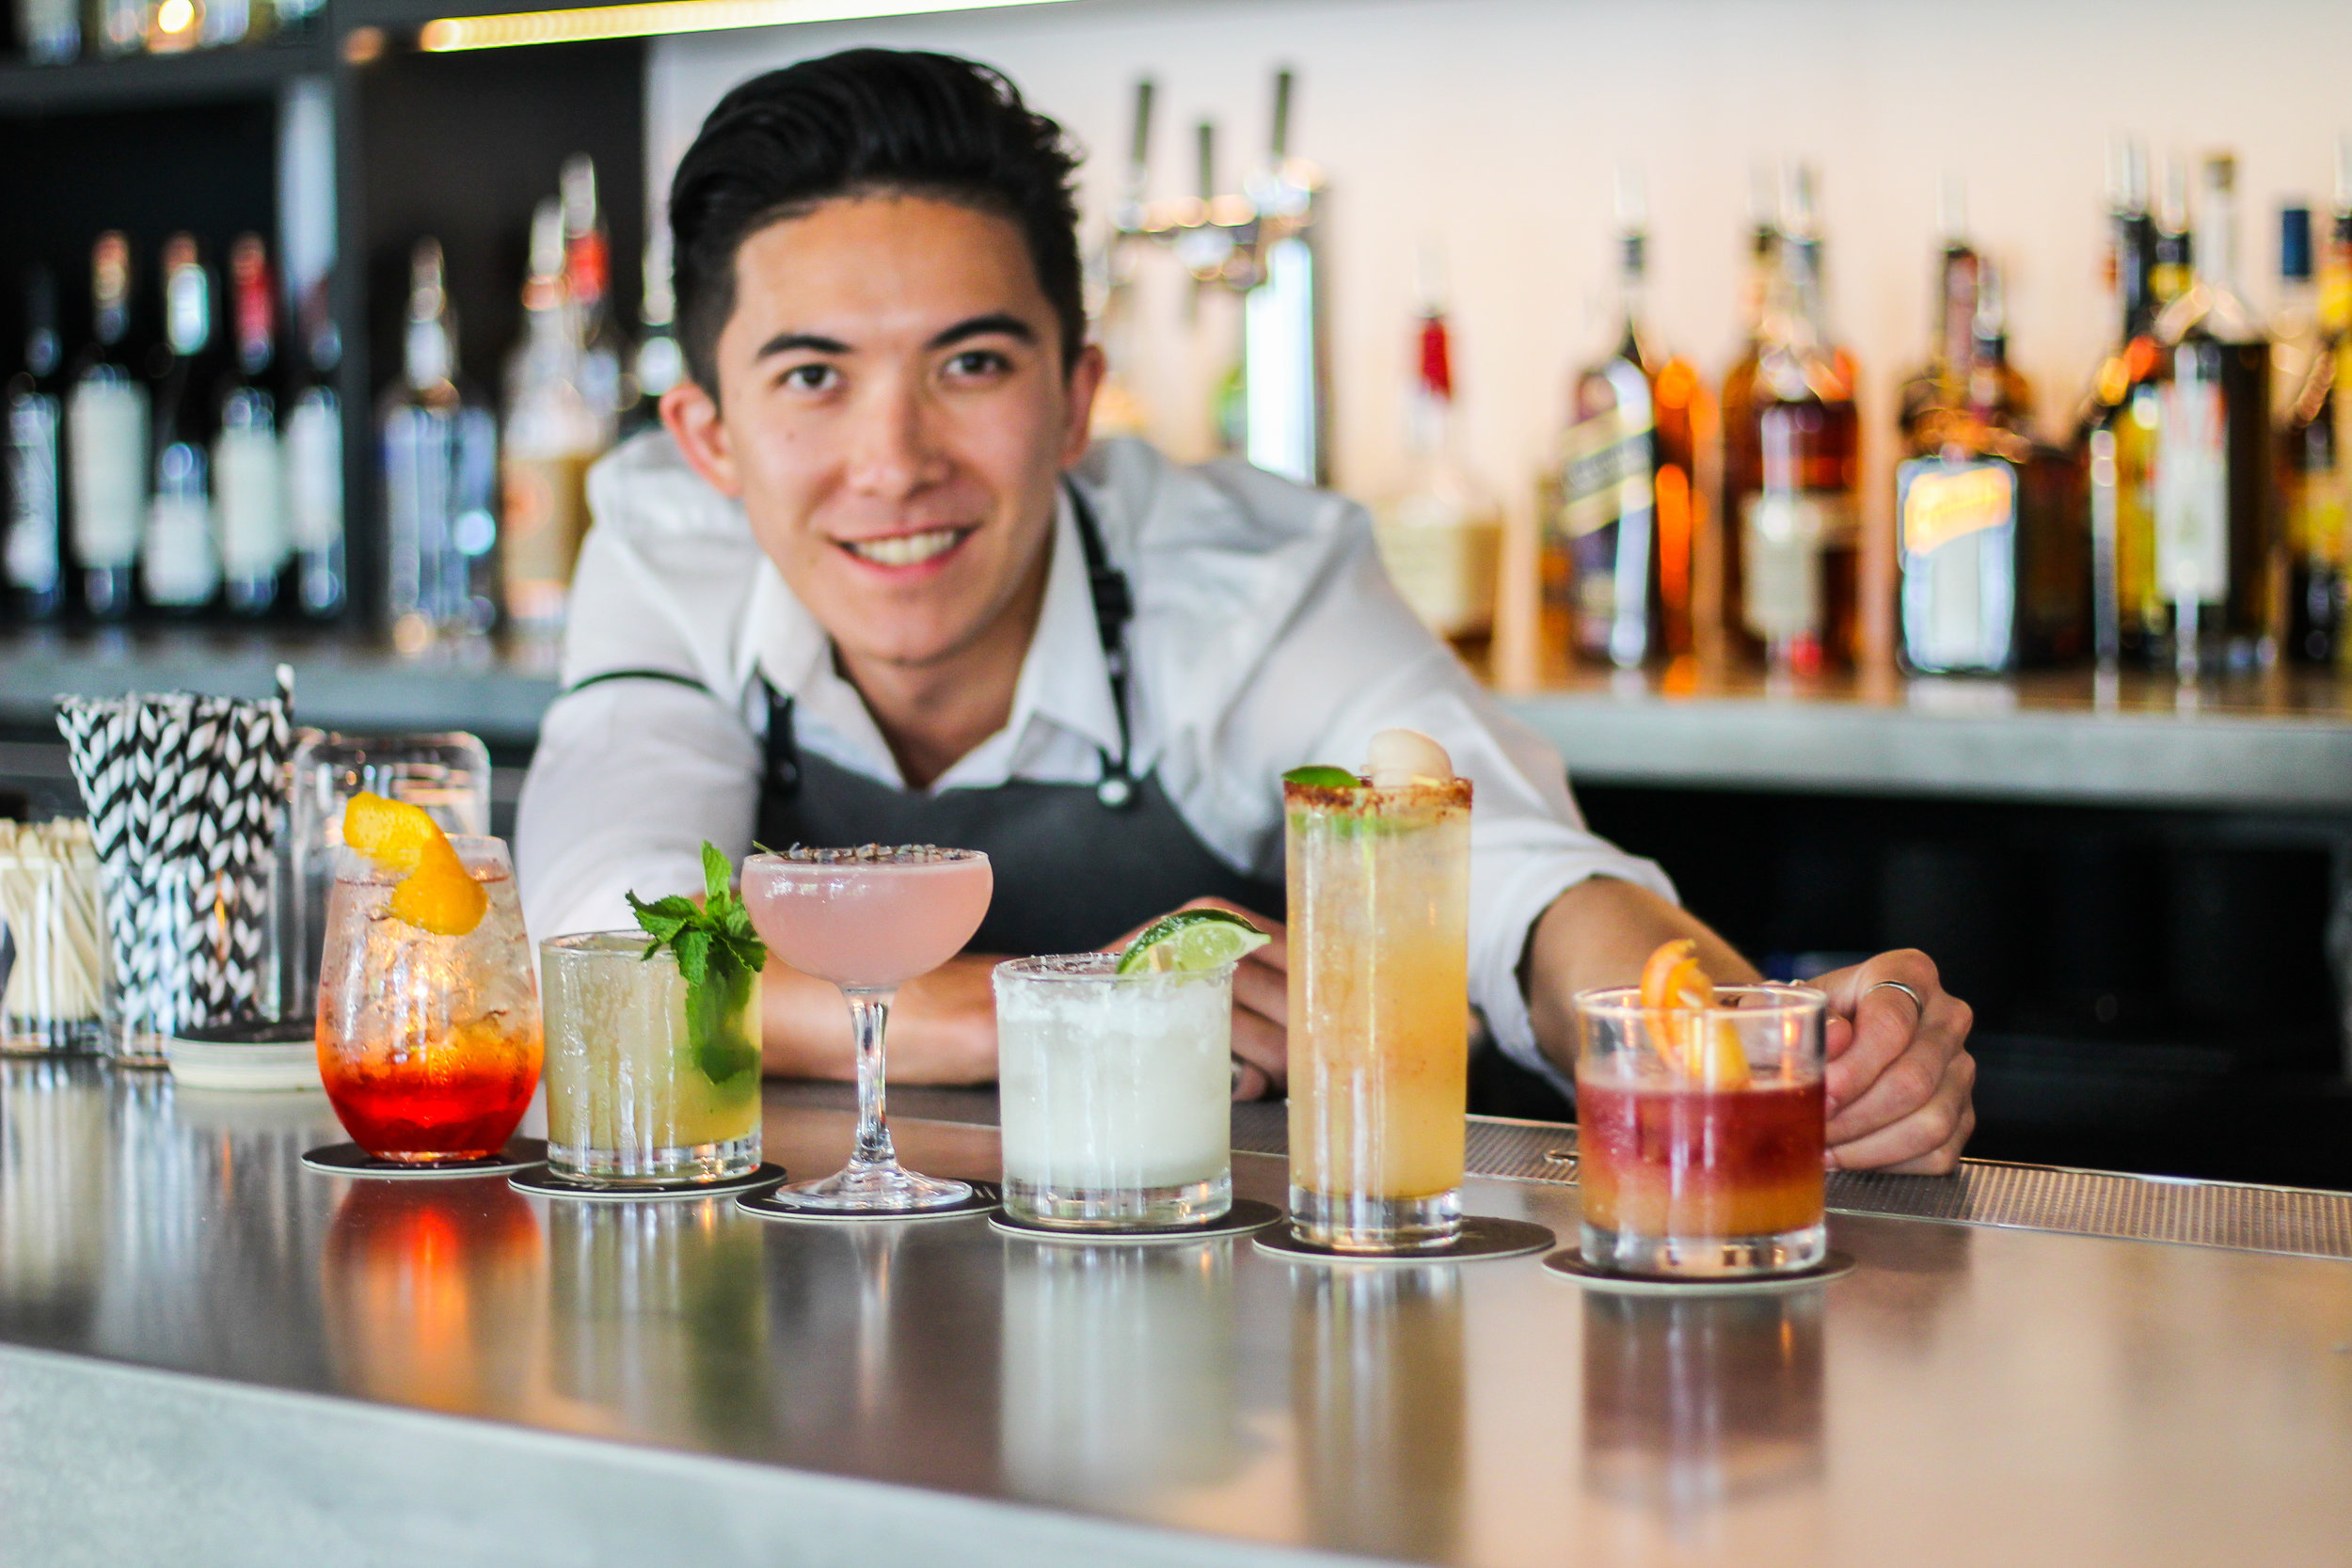 Hospitality Consultation - Food and beverage is one of the hardest industries to master. Between all of the moving parts within such a business, why not get some of the best advice from someone who's been involved since day one.